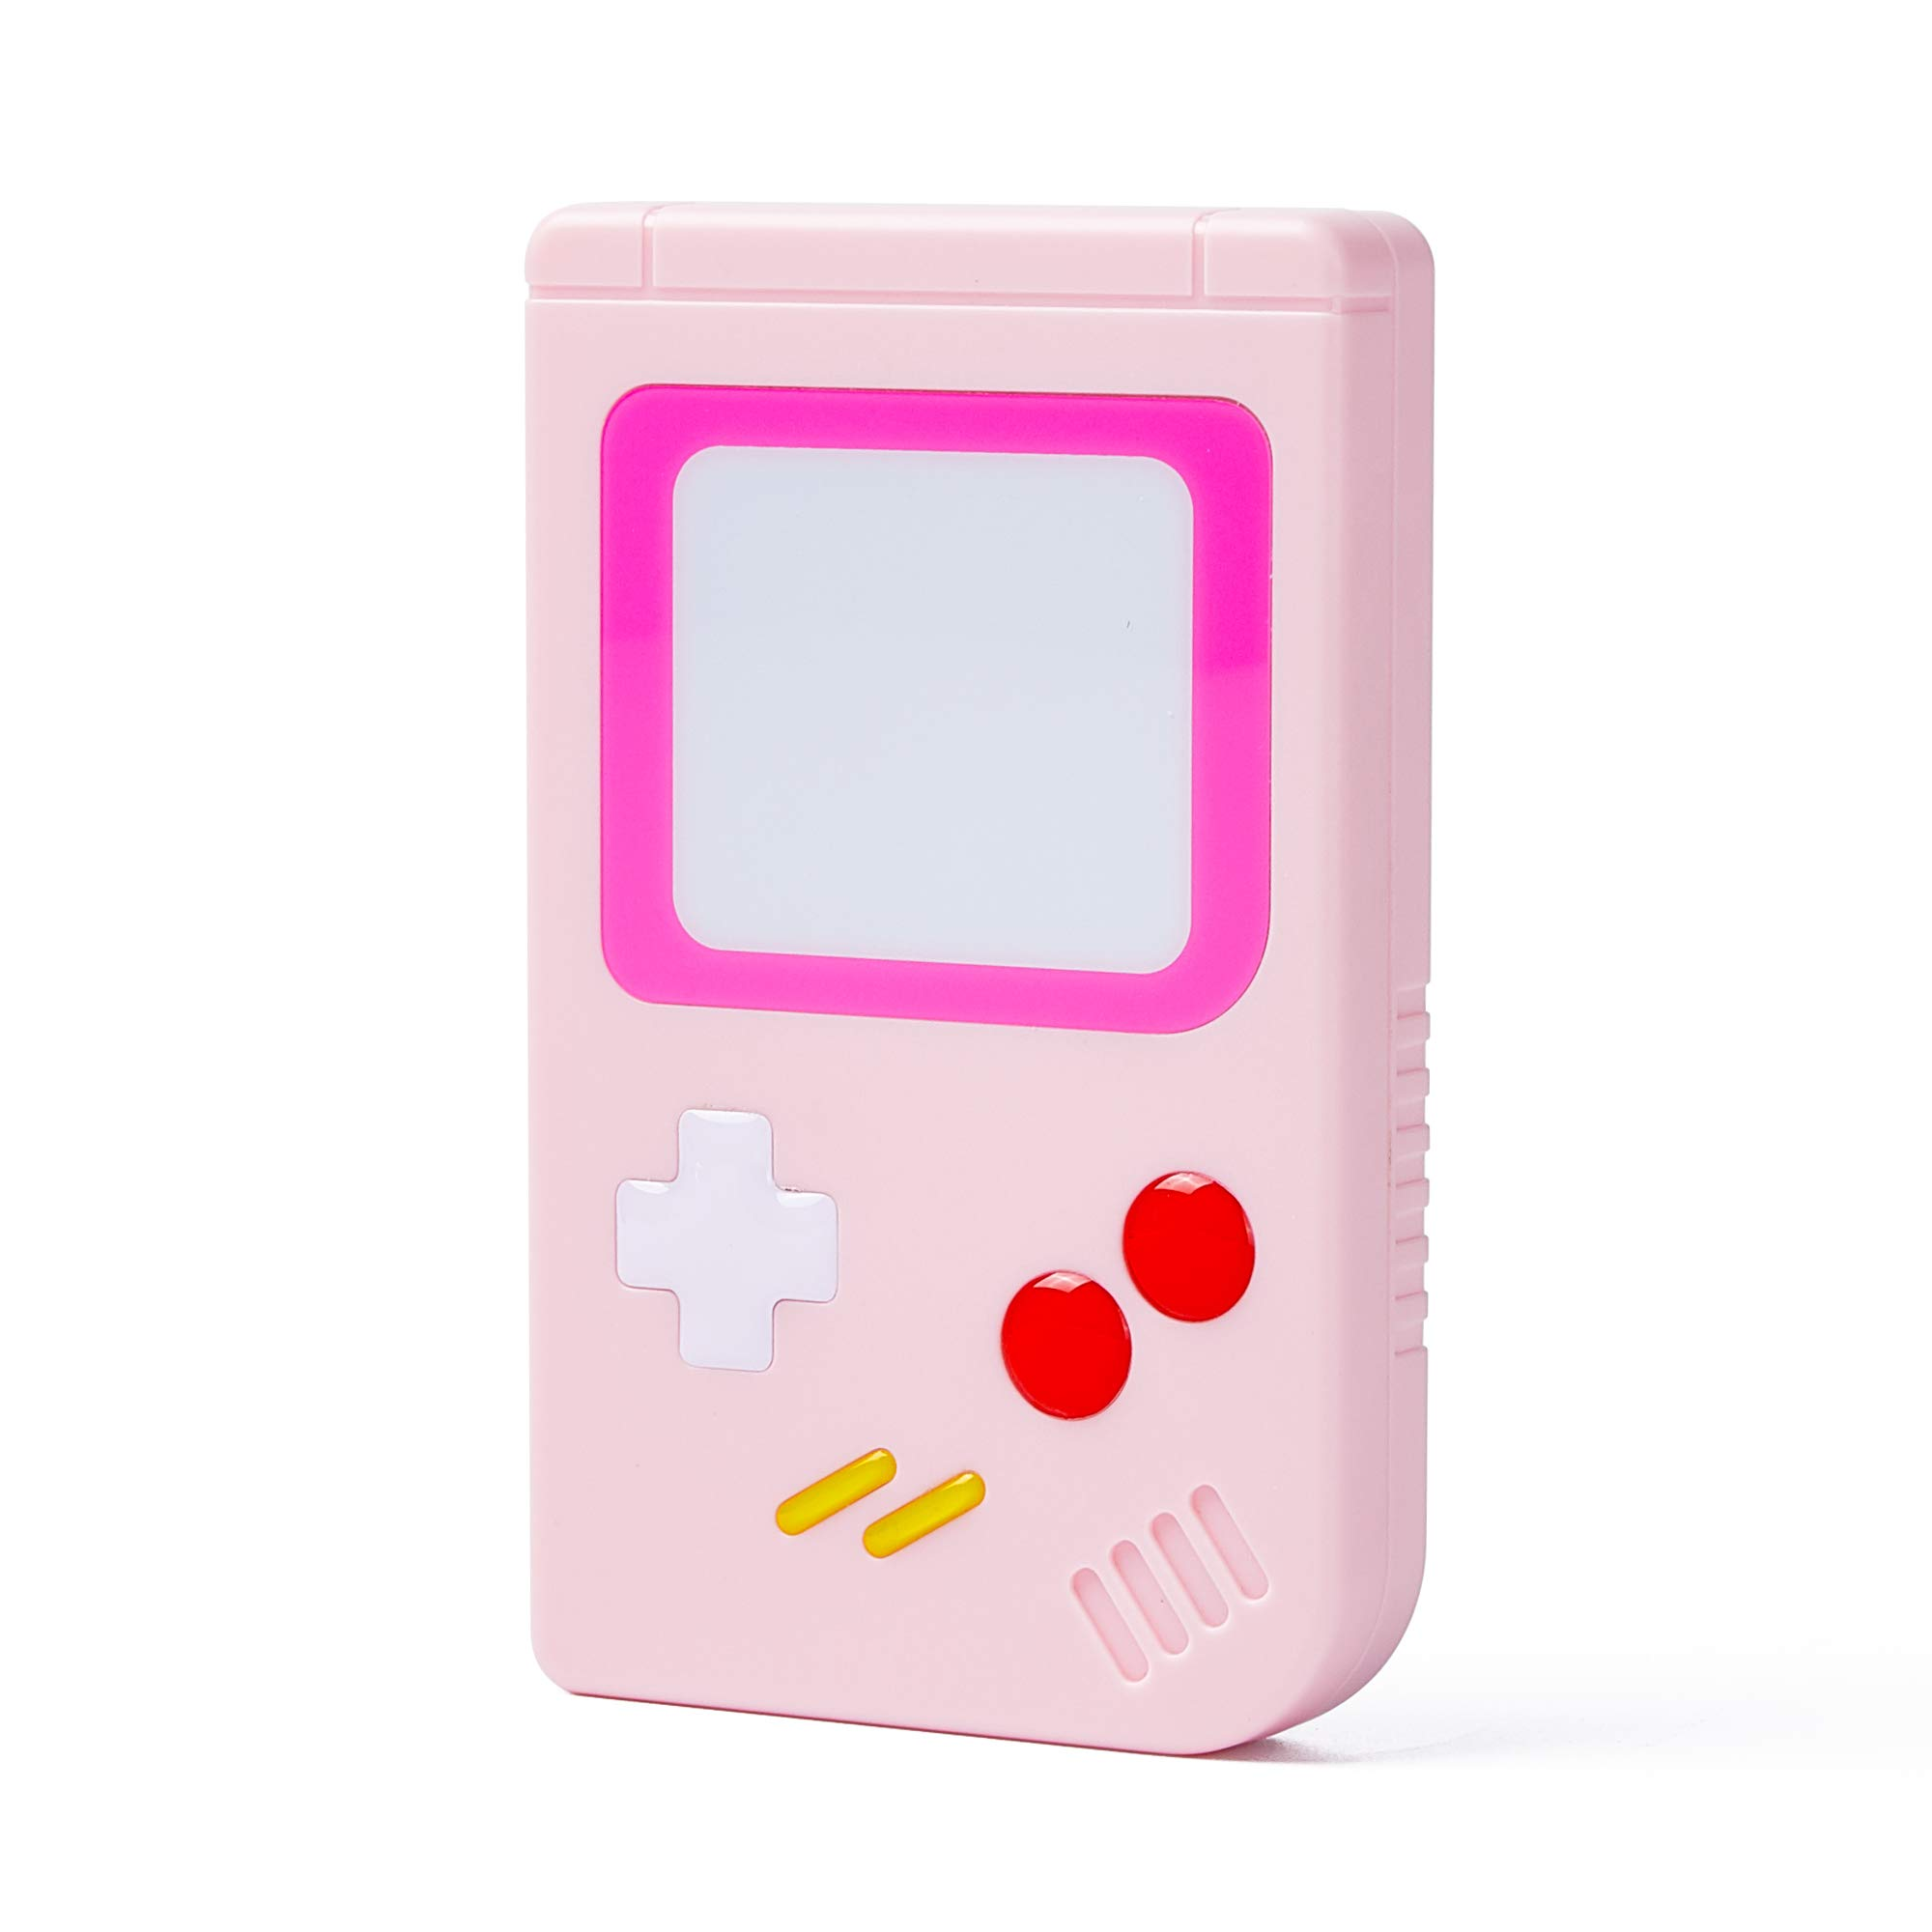 LeyuSmart Game Card Case for Nintendo Switch Games,10 Slot Storage Protective Box, Slim and Portable (Pink)